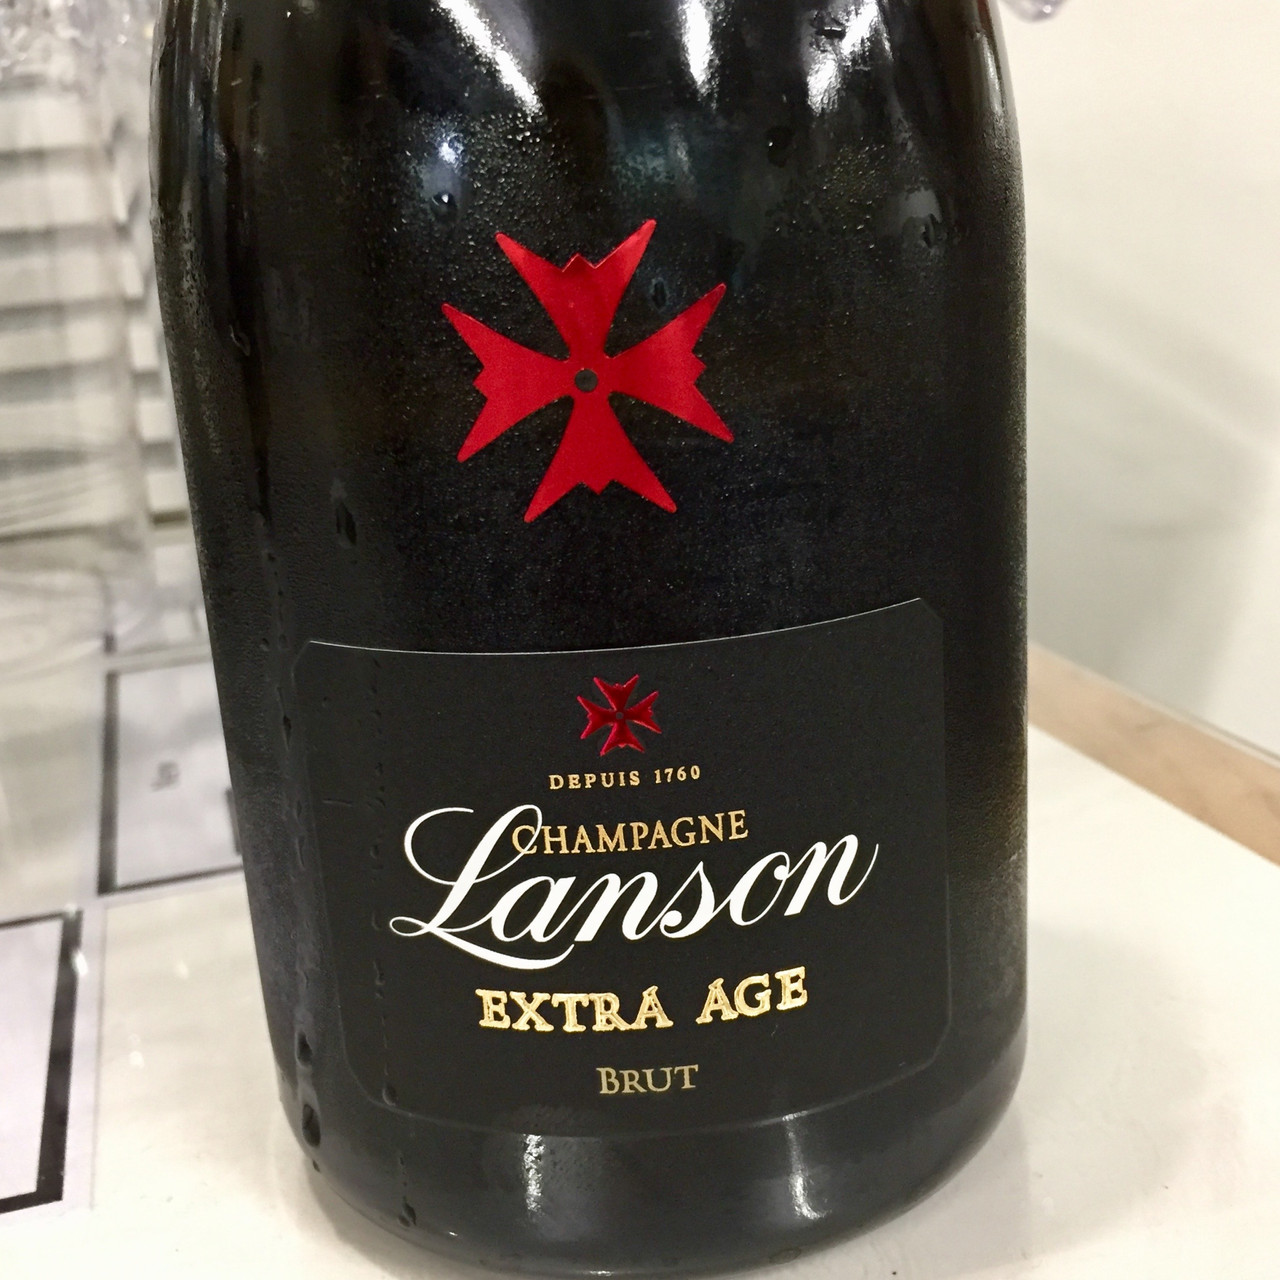 Lanson Extra Age and Leclerc Briant Champagnes